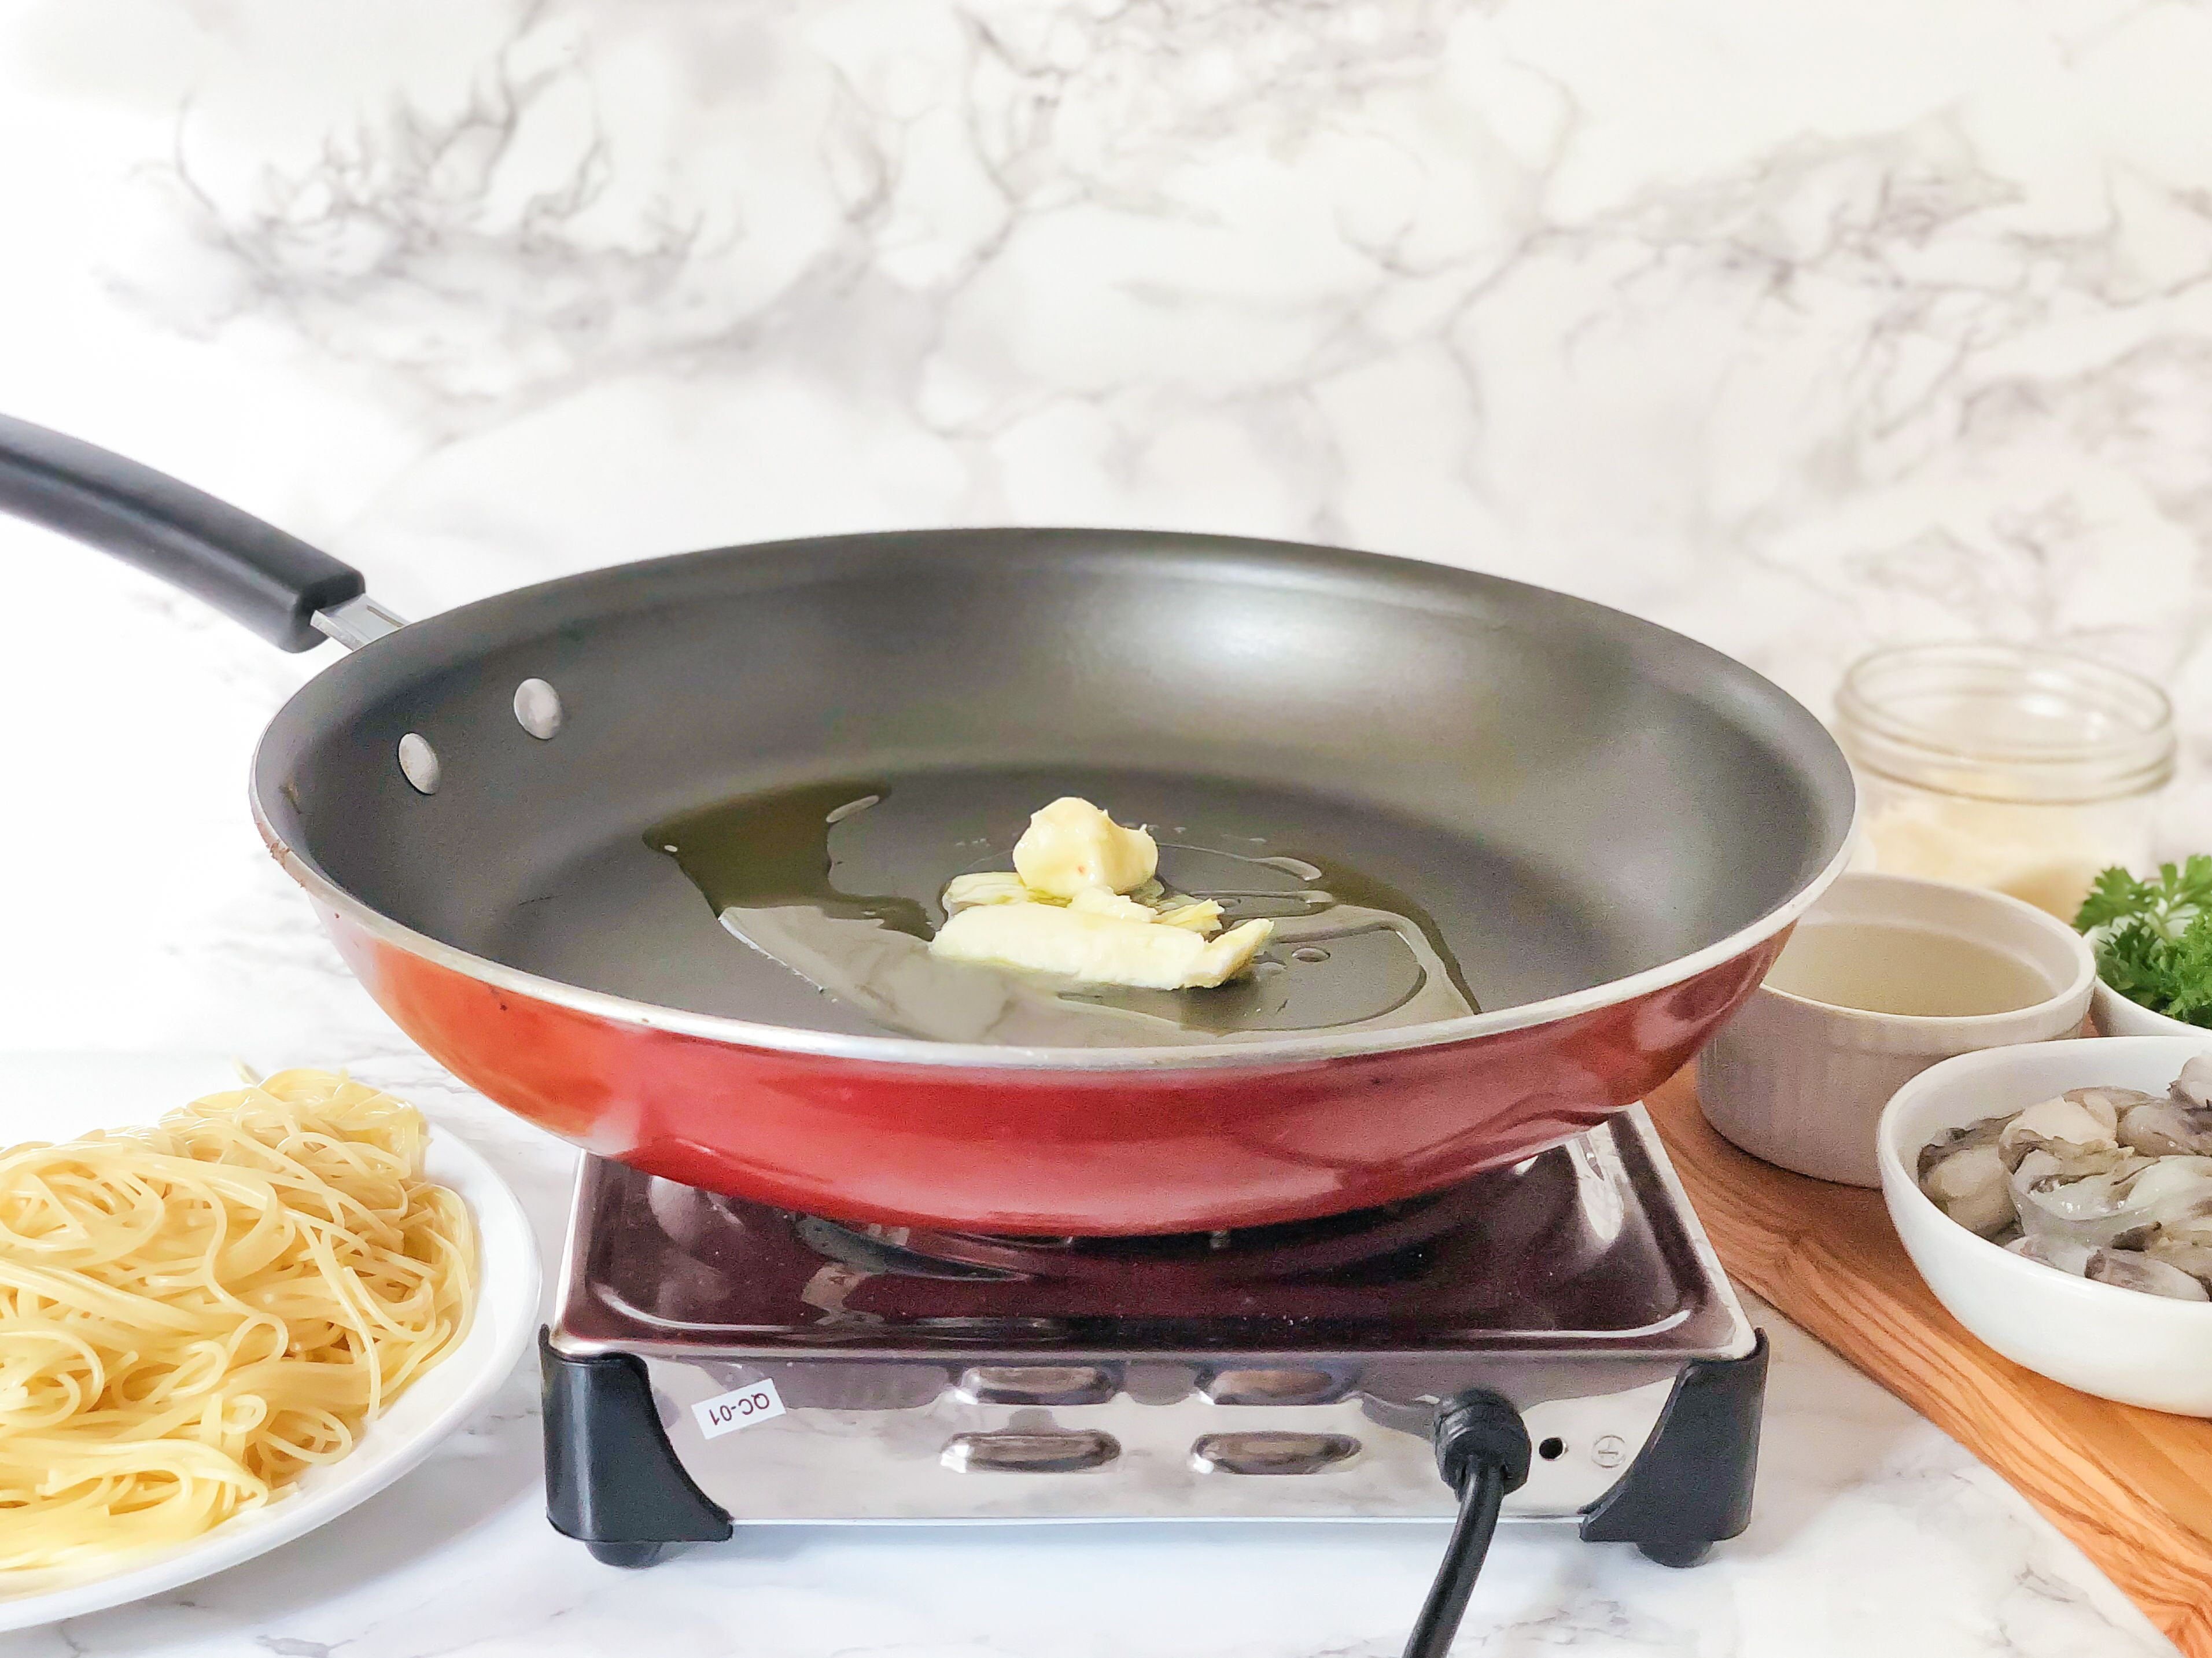 Saute butter and oil in saucepan